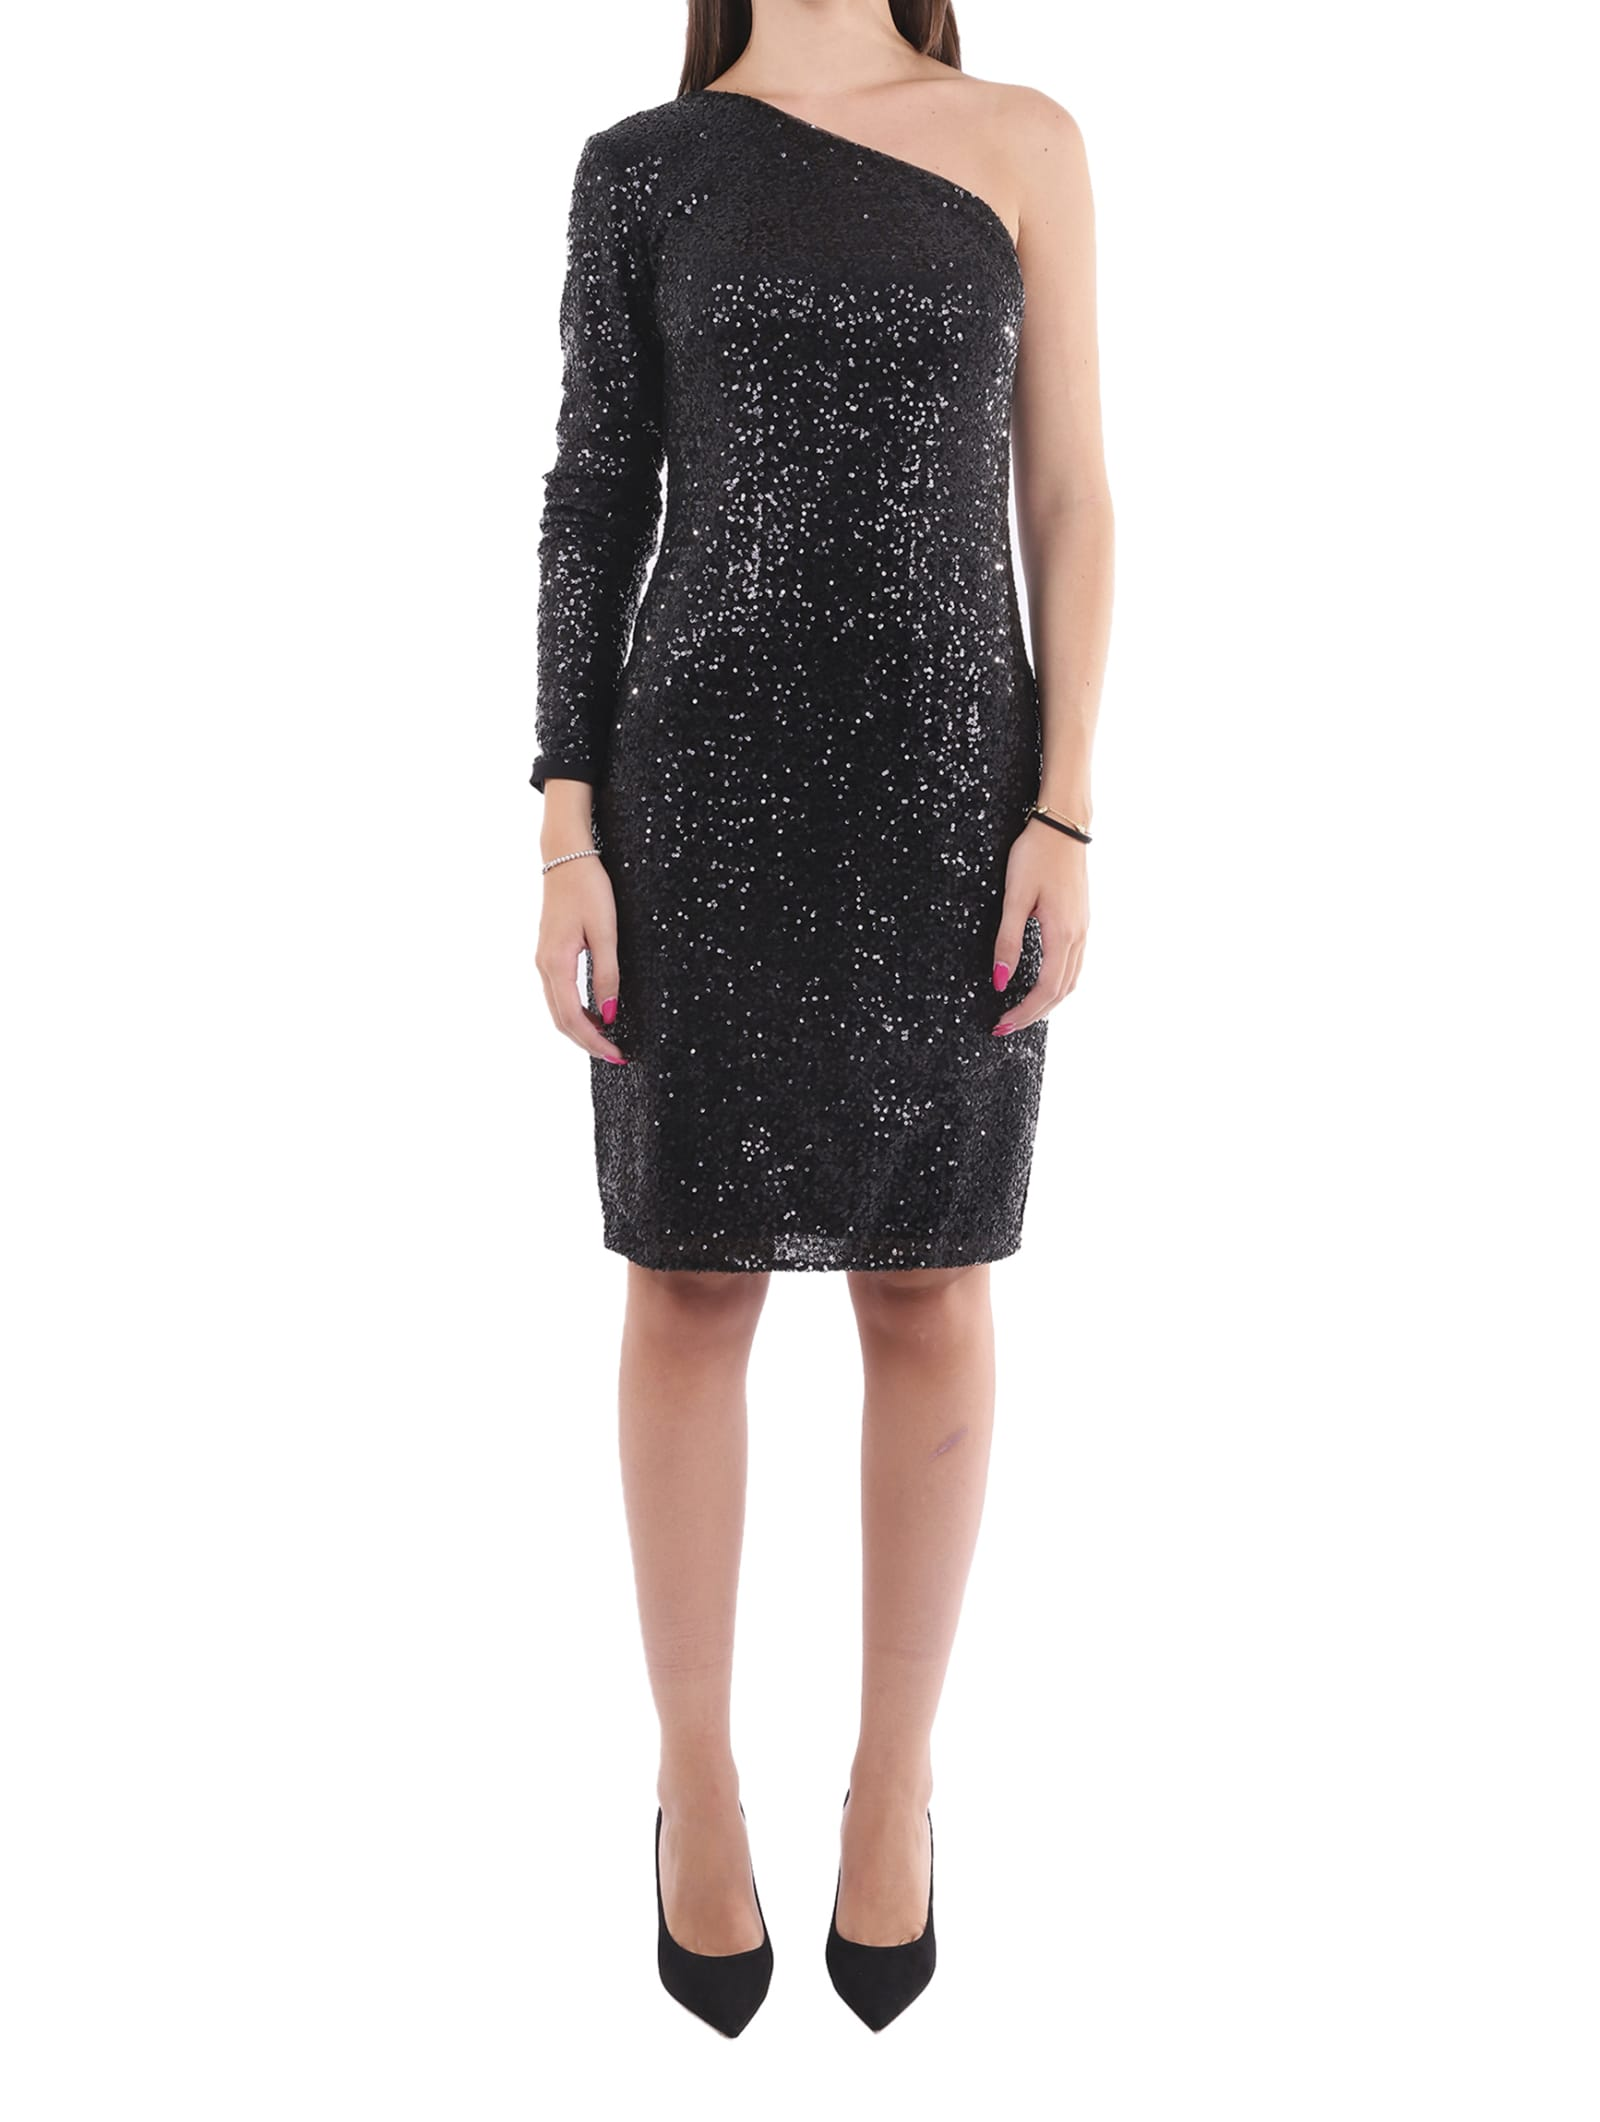 Lauren Ralph Lauren Black Marri Dress